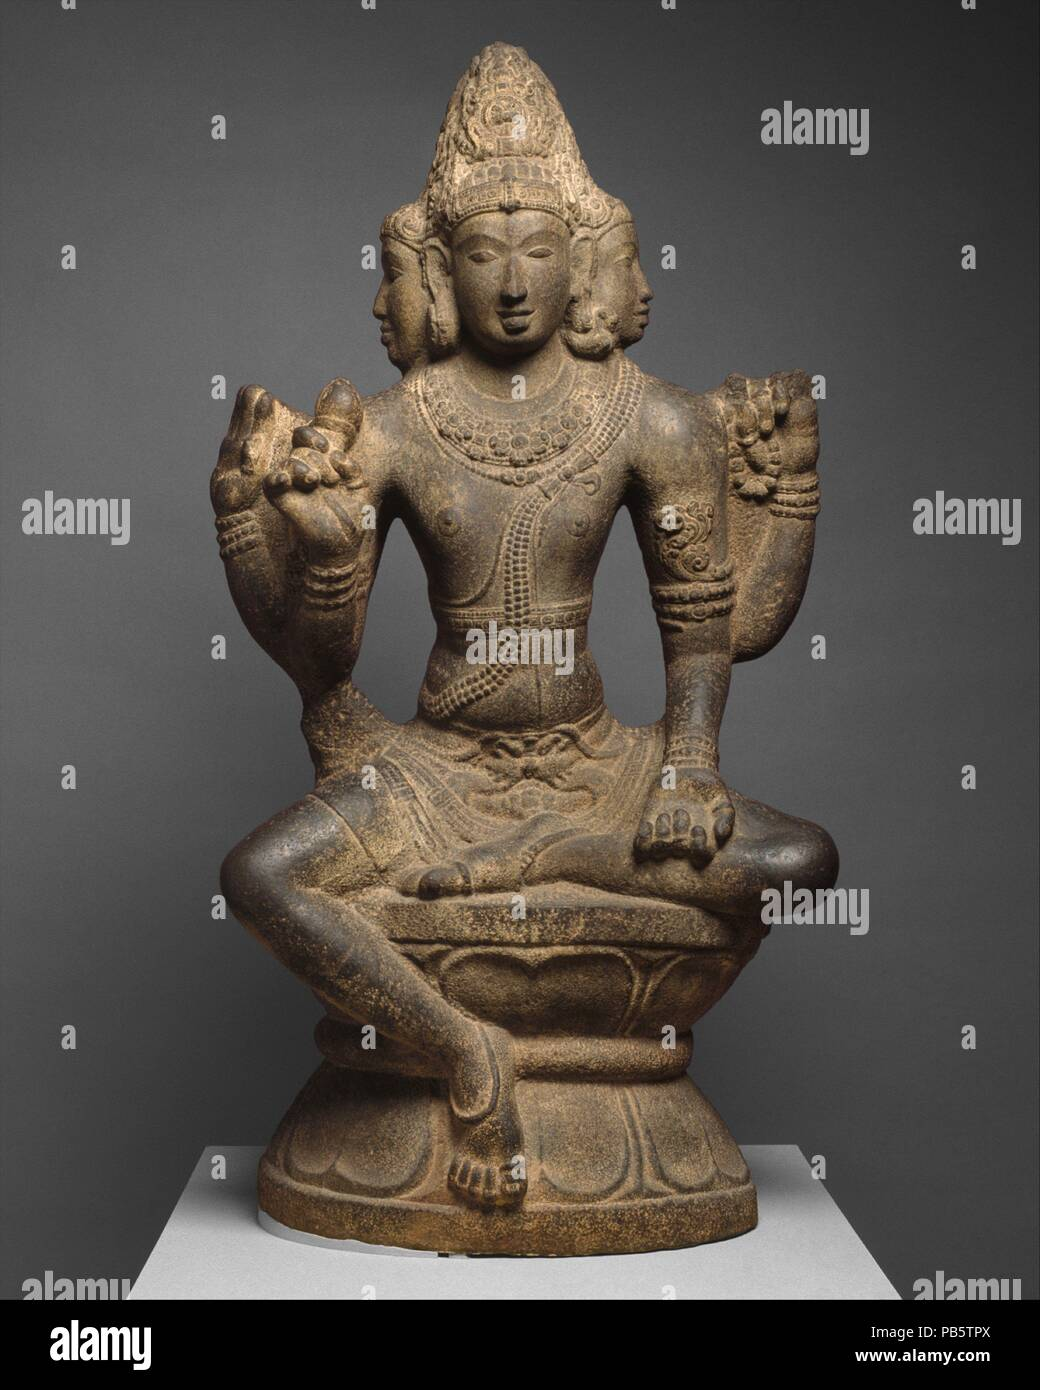 Shiva as Mahesha. Culture: India (Tamil Nadu). Dimensions: H. 58 in. (147.3 cm); W. 32 in. (81.3 cm); D. 16 in. (40.6 cm). Date: 10th century.  This statue is part of a group of unusual large stone carvings in the round from the Chola period. They all portray the same deity, long identified as Brahma but now thought to be Mahesha, a form of Shiva. Shiva's worshipers believe that he manifests himself in three stages, which move from the abstract to the concrete--symbolized by the undecorated linga (shaft); the linga with one or more faces emerging from it; and, finally, Mahesha. From him are bo Stock Photo